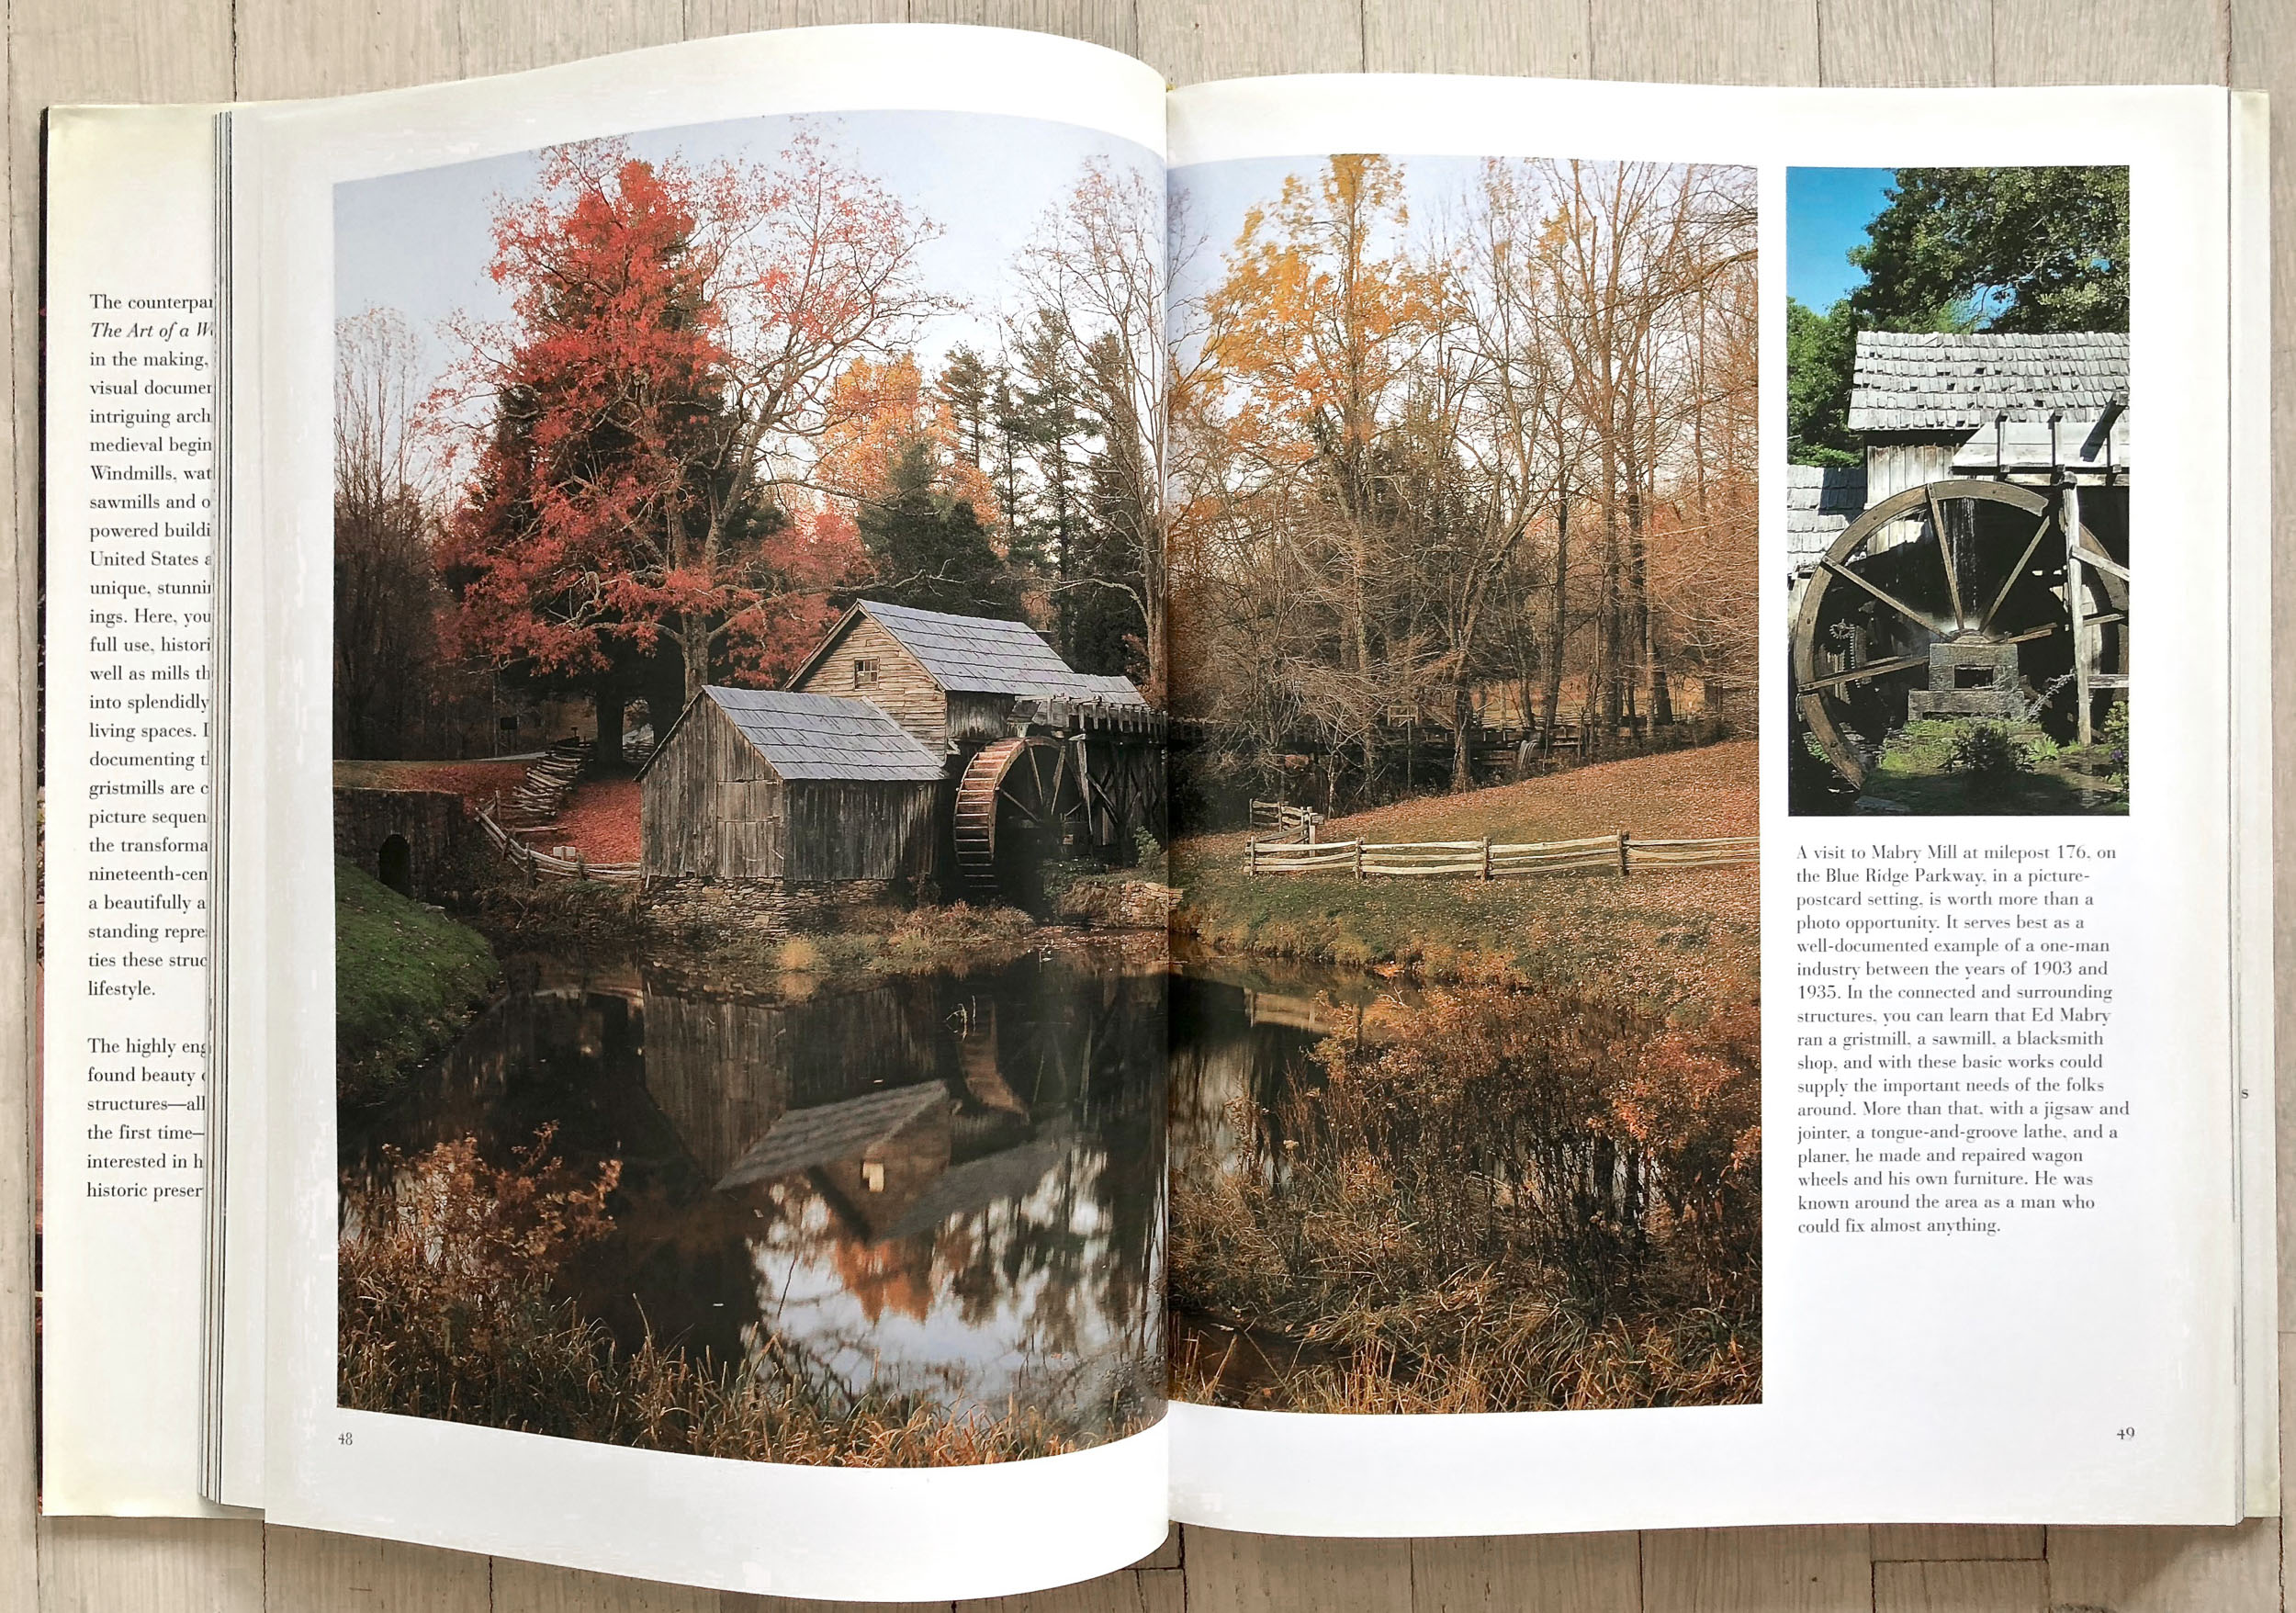 Mill: The History and Future of Naturally Powered Buildings  by David Larkin. Edited by Richard Olsen. David Larkin, Graphic Design. Belinda Hellinger, Production Manager. Universe Publishing.